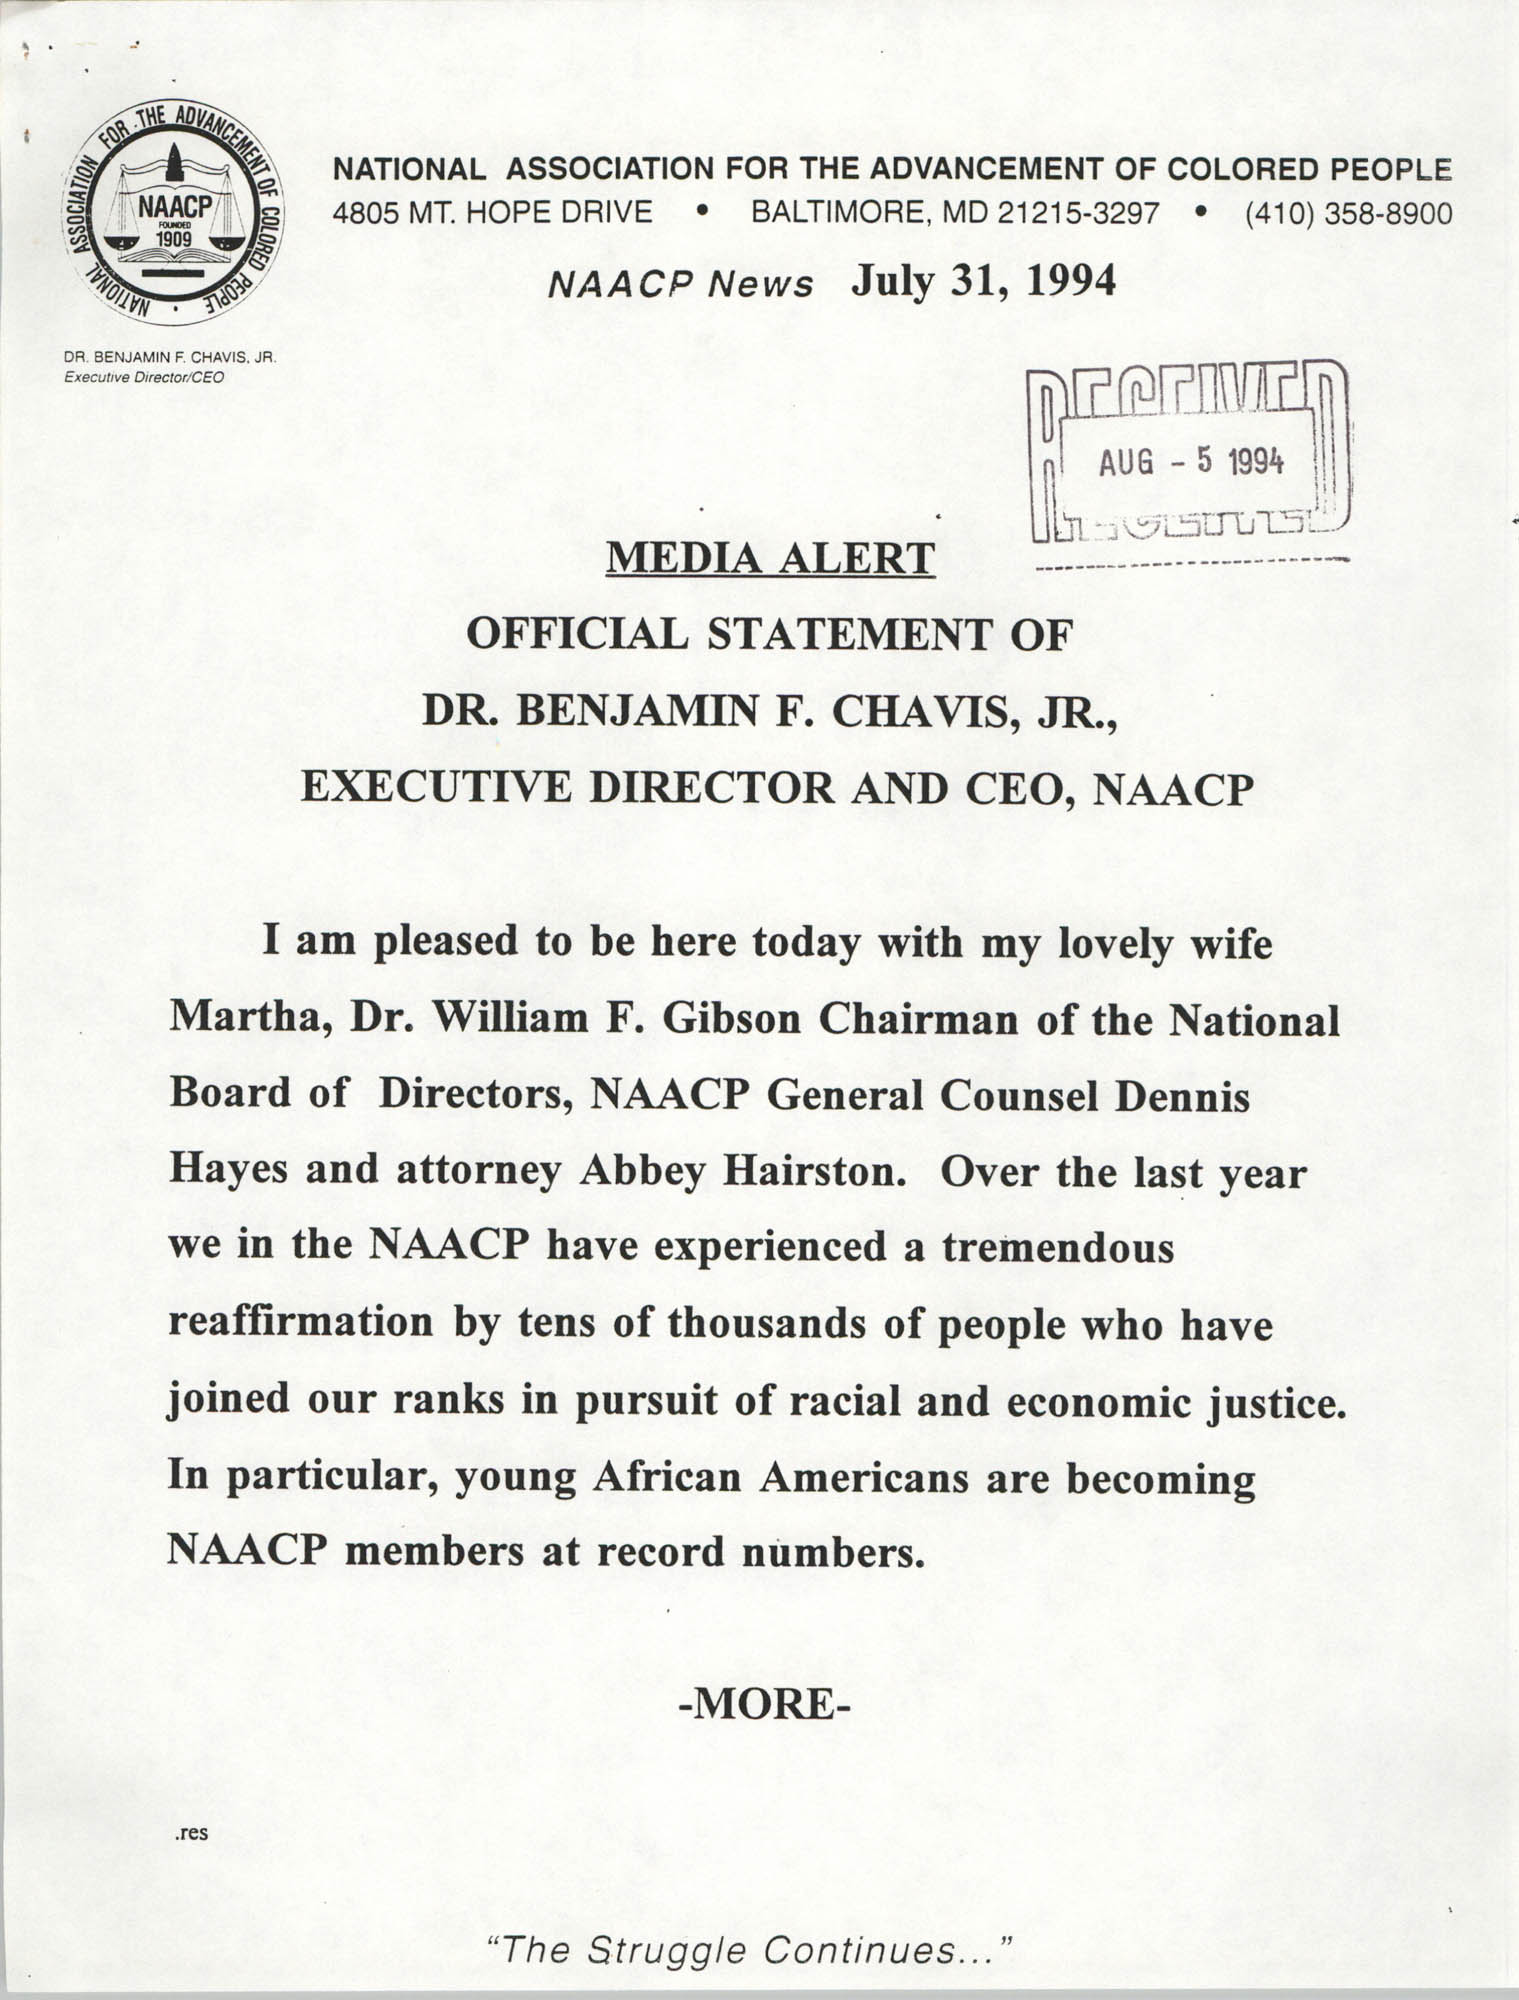 NAACP Media Alert, Official Statement of Dr. Benjamin F. Chavis, Jr.